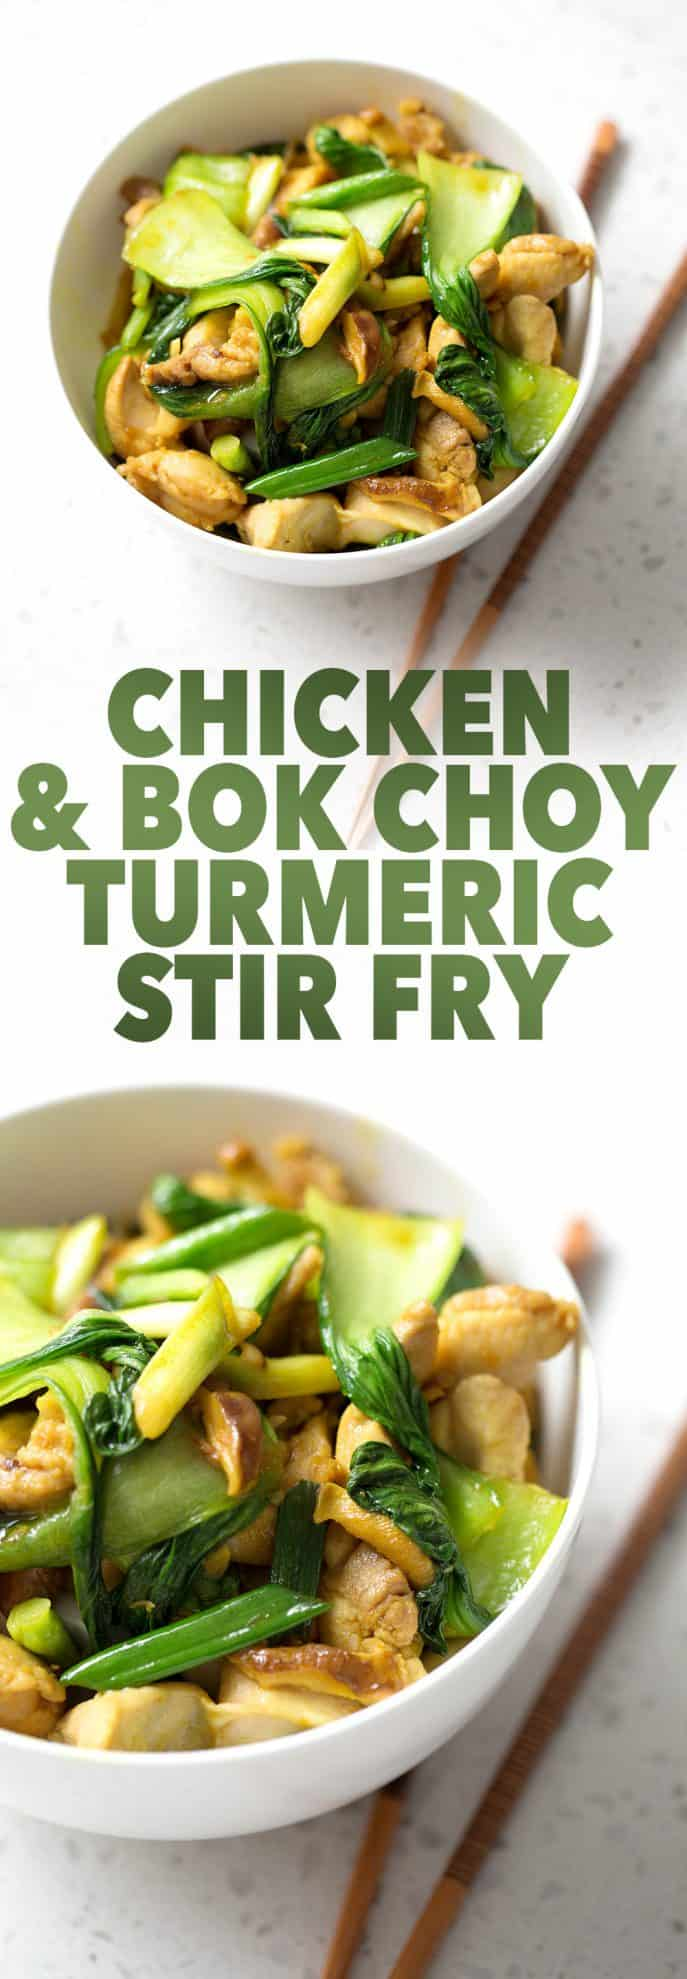 bowls of stir fry on white background with the words chicken and bok choy turmeric stir fry